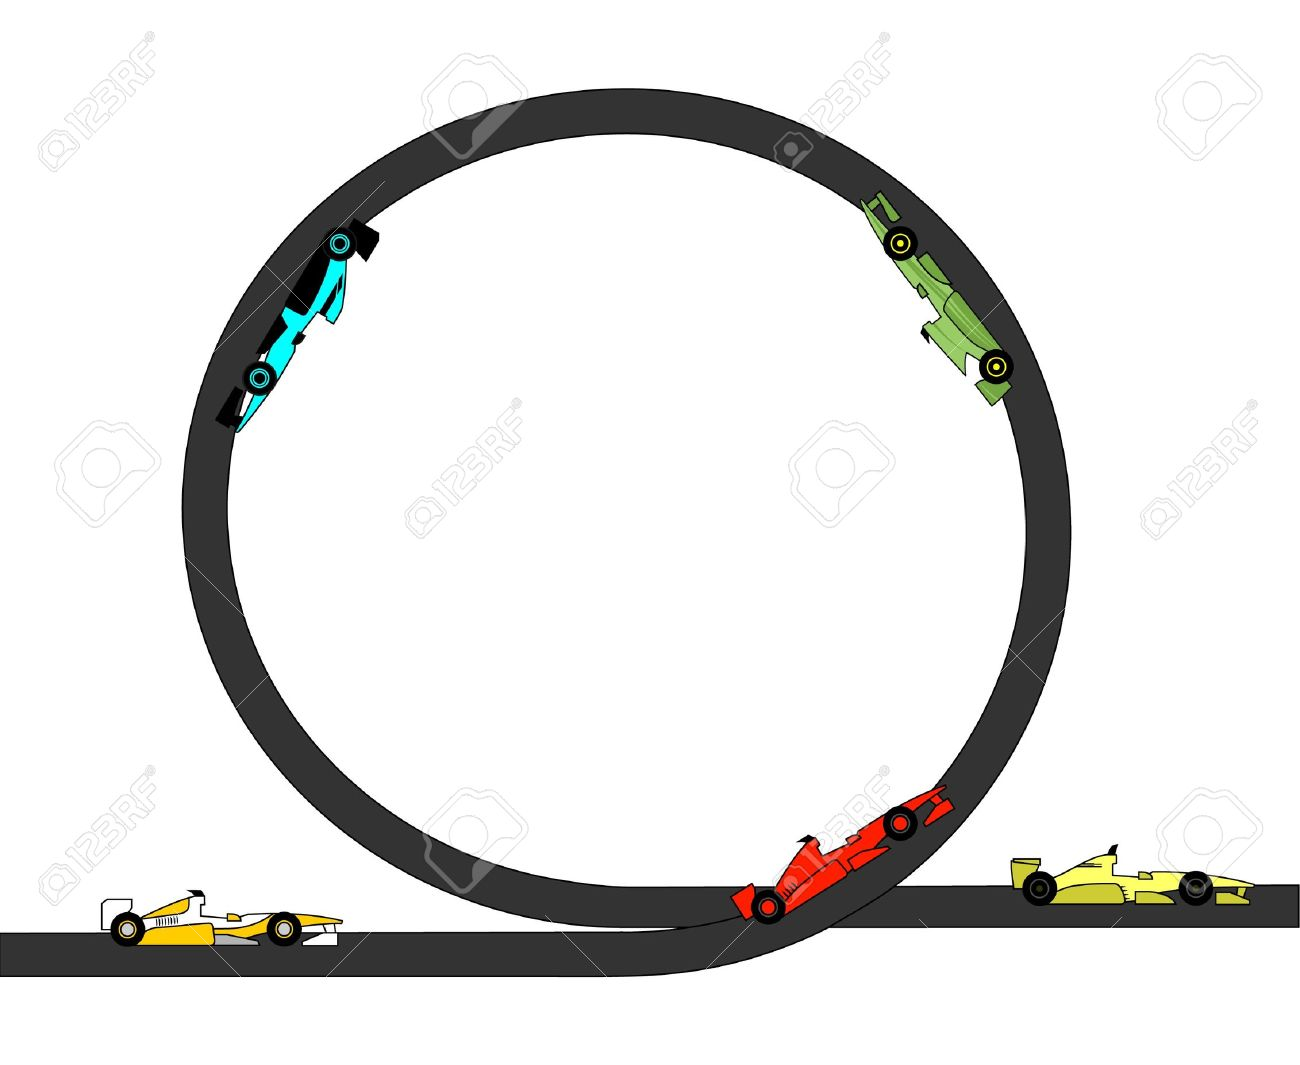 Drawings Of Race Cars Through A Looping Royalty Free Cliparts.